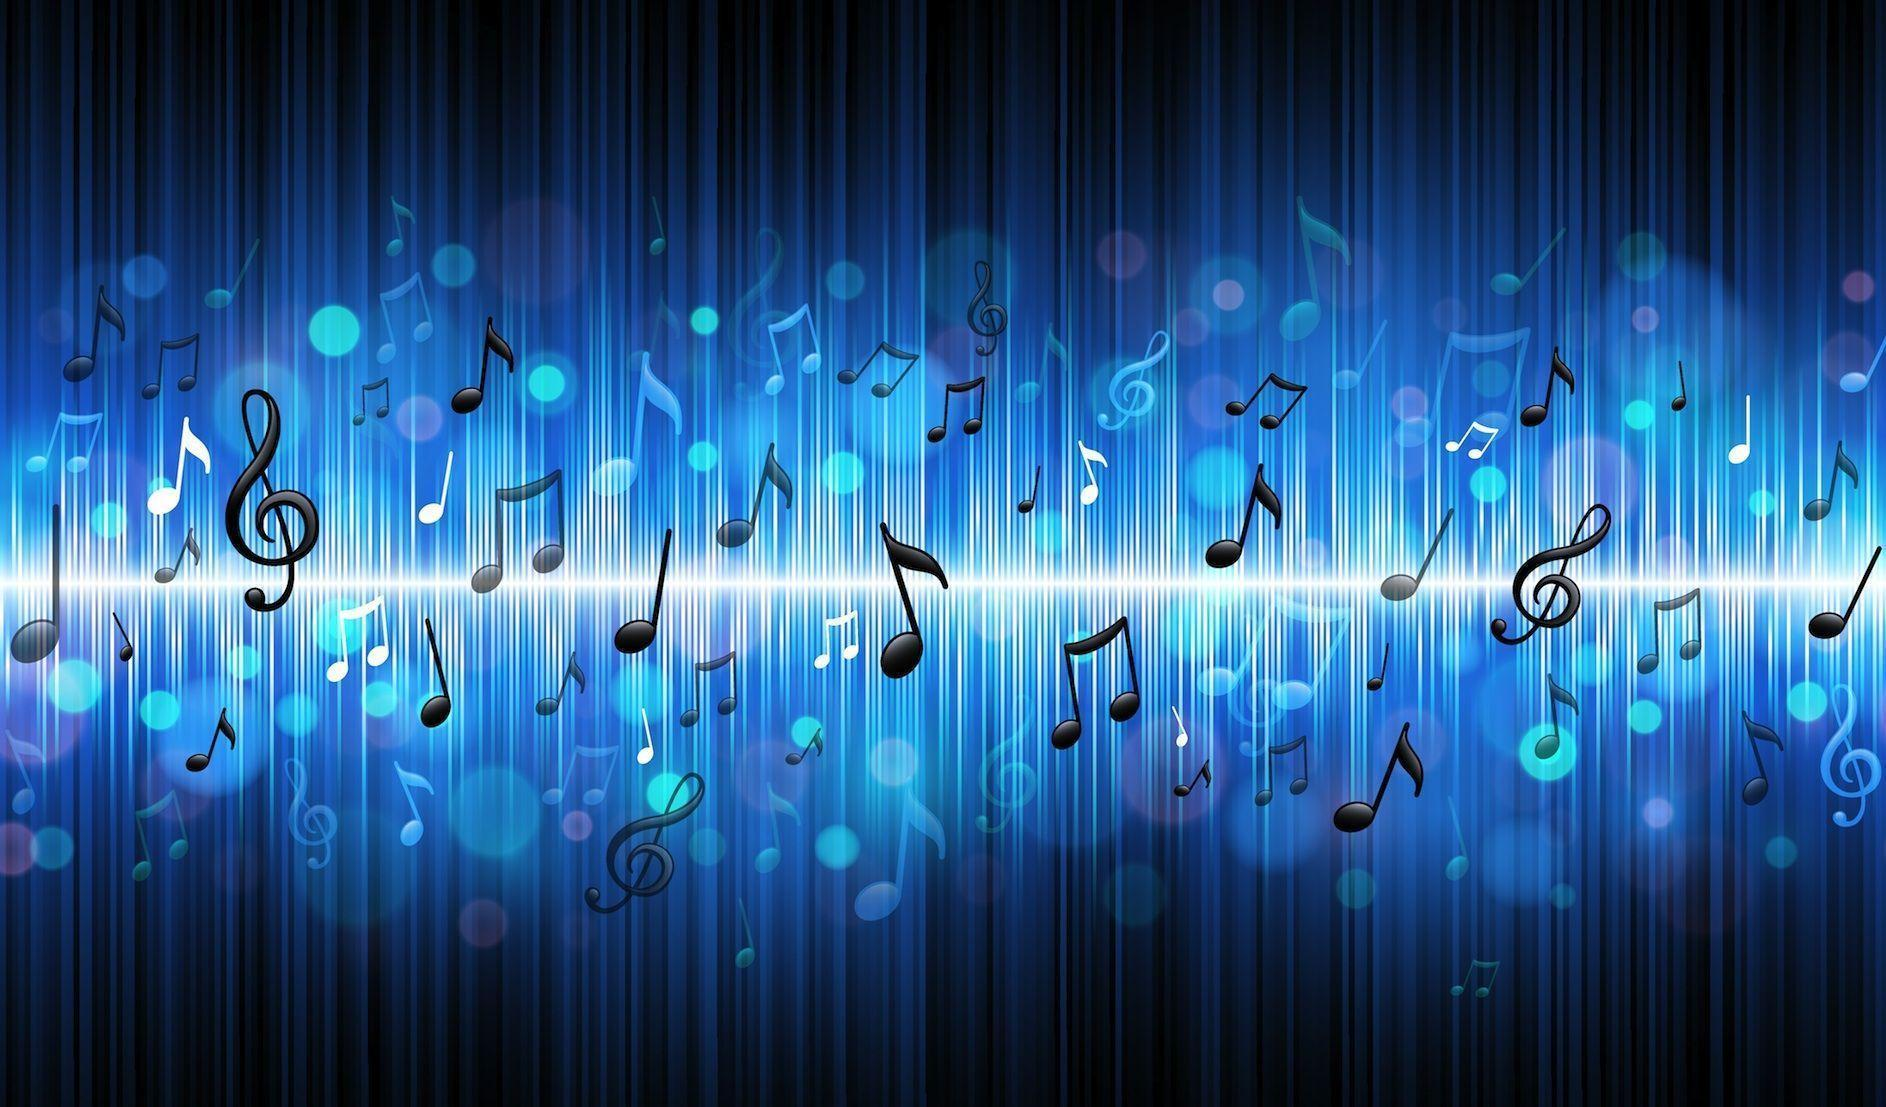 Music Backgrounds Music Desktop Background Free Premium: Blue Music Wallpapers